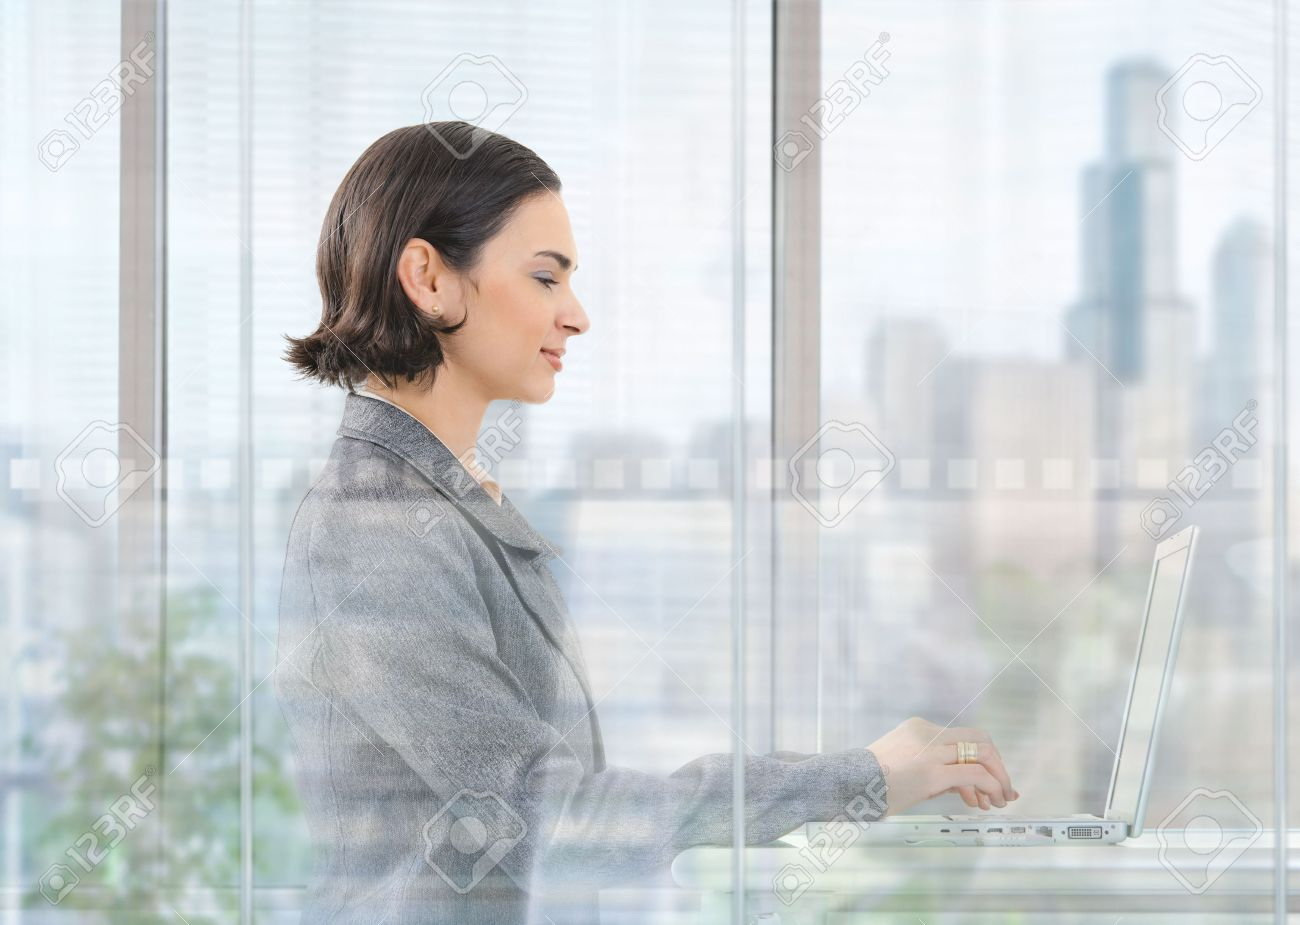 Young businesswoman sitting at desk in modern office behind glass wall, using laptop computer, smiling. Stock Photo - 5758641